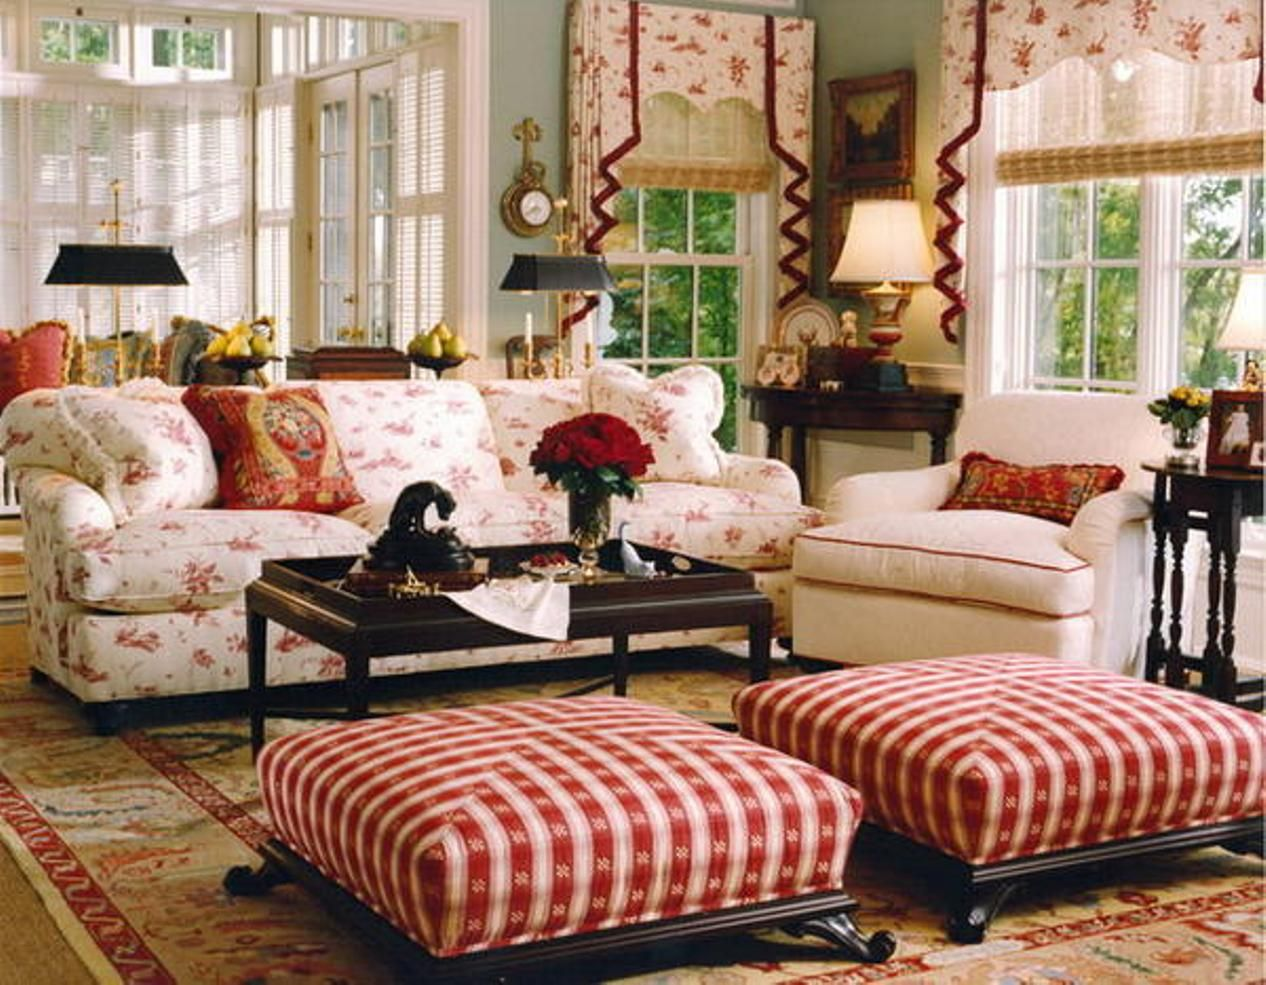 size sofas near me apartment just sofa ideas frenchy furniture mefrench couch country excelent mecountry style couches designer stores